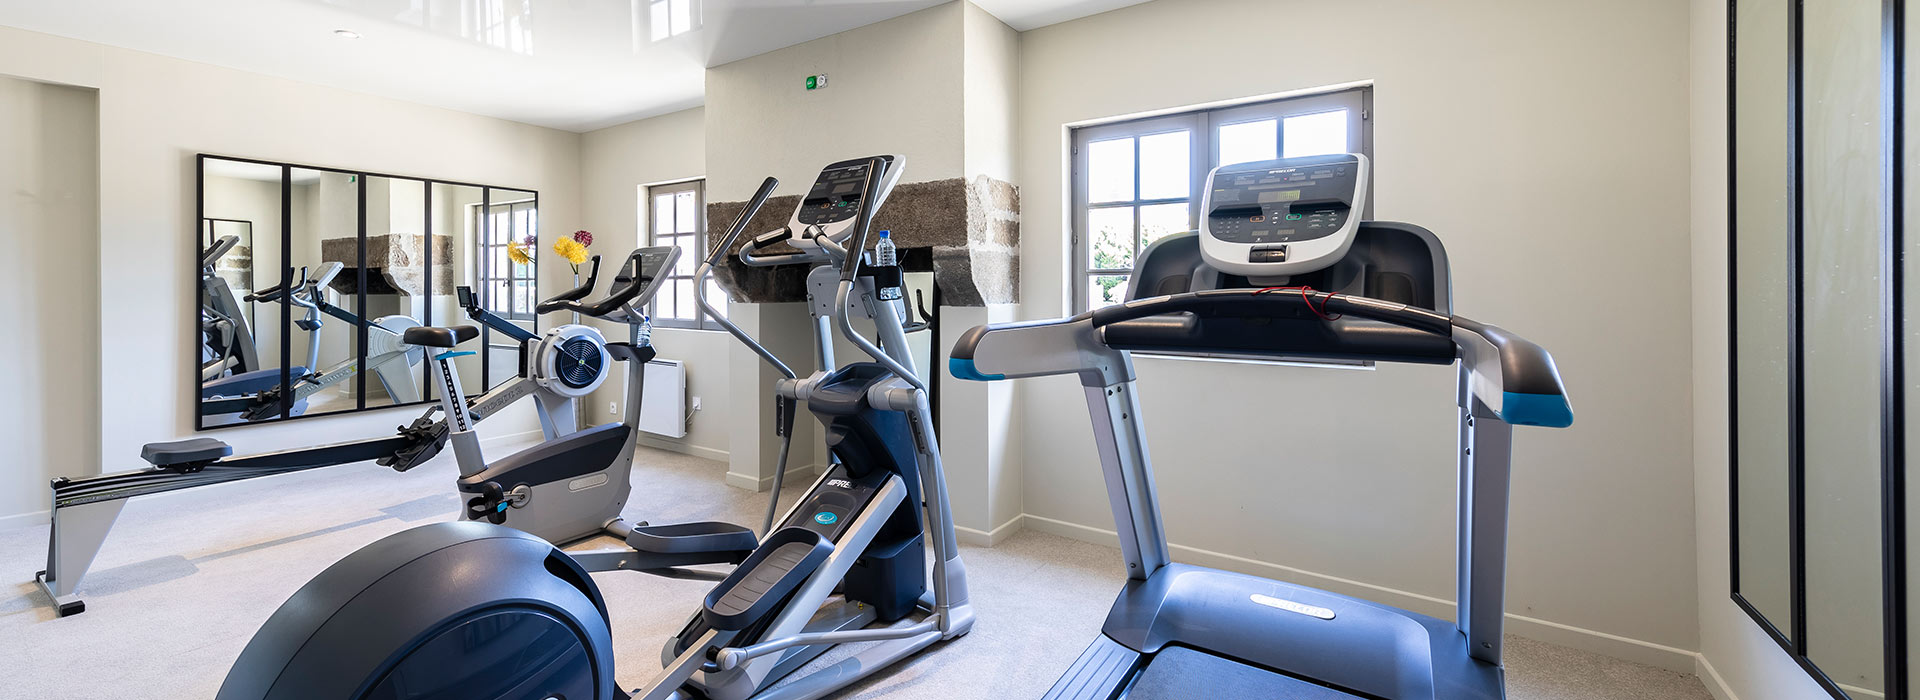 hotel with FITNESS CENTRE